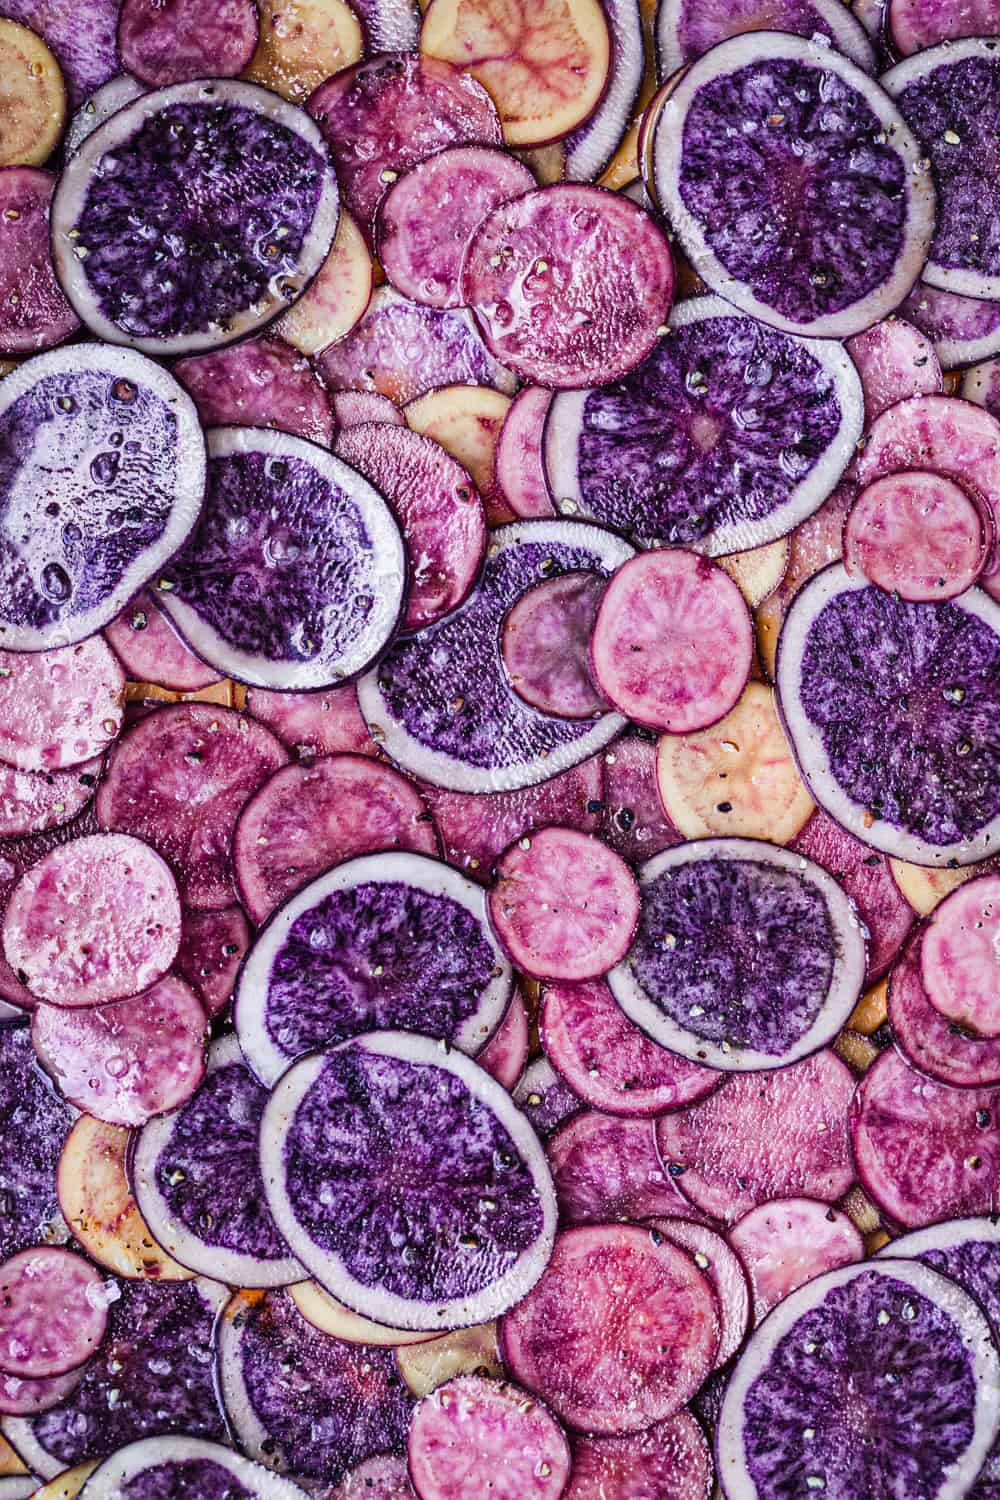 Thinly sliced pink, purple and white potato rounds; tossed with olive oil, sat and pepper; overhead shot.